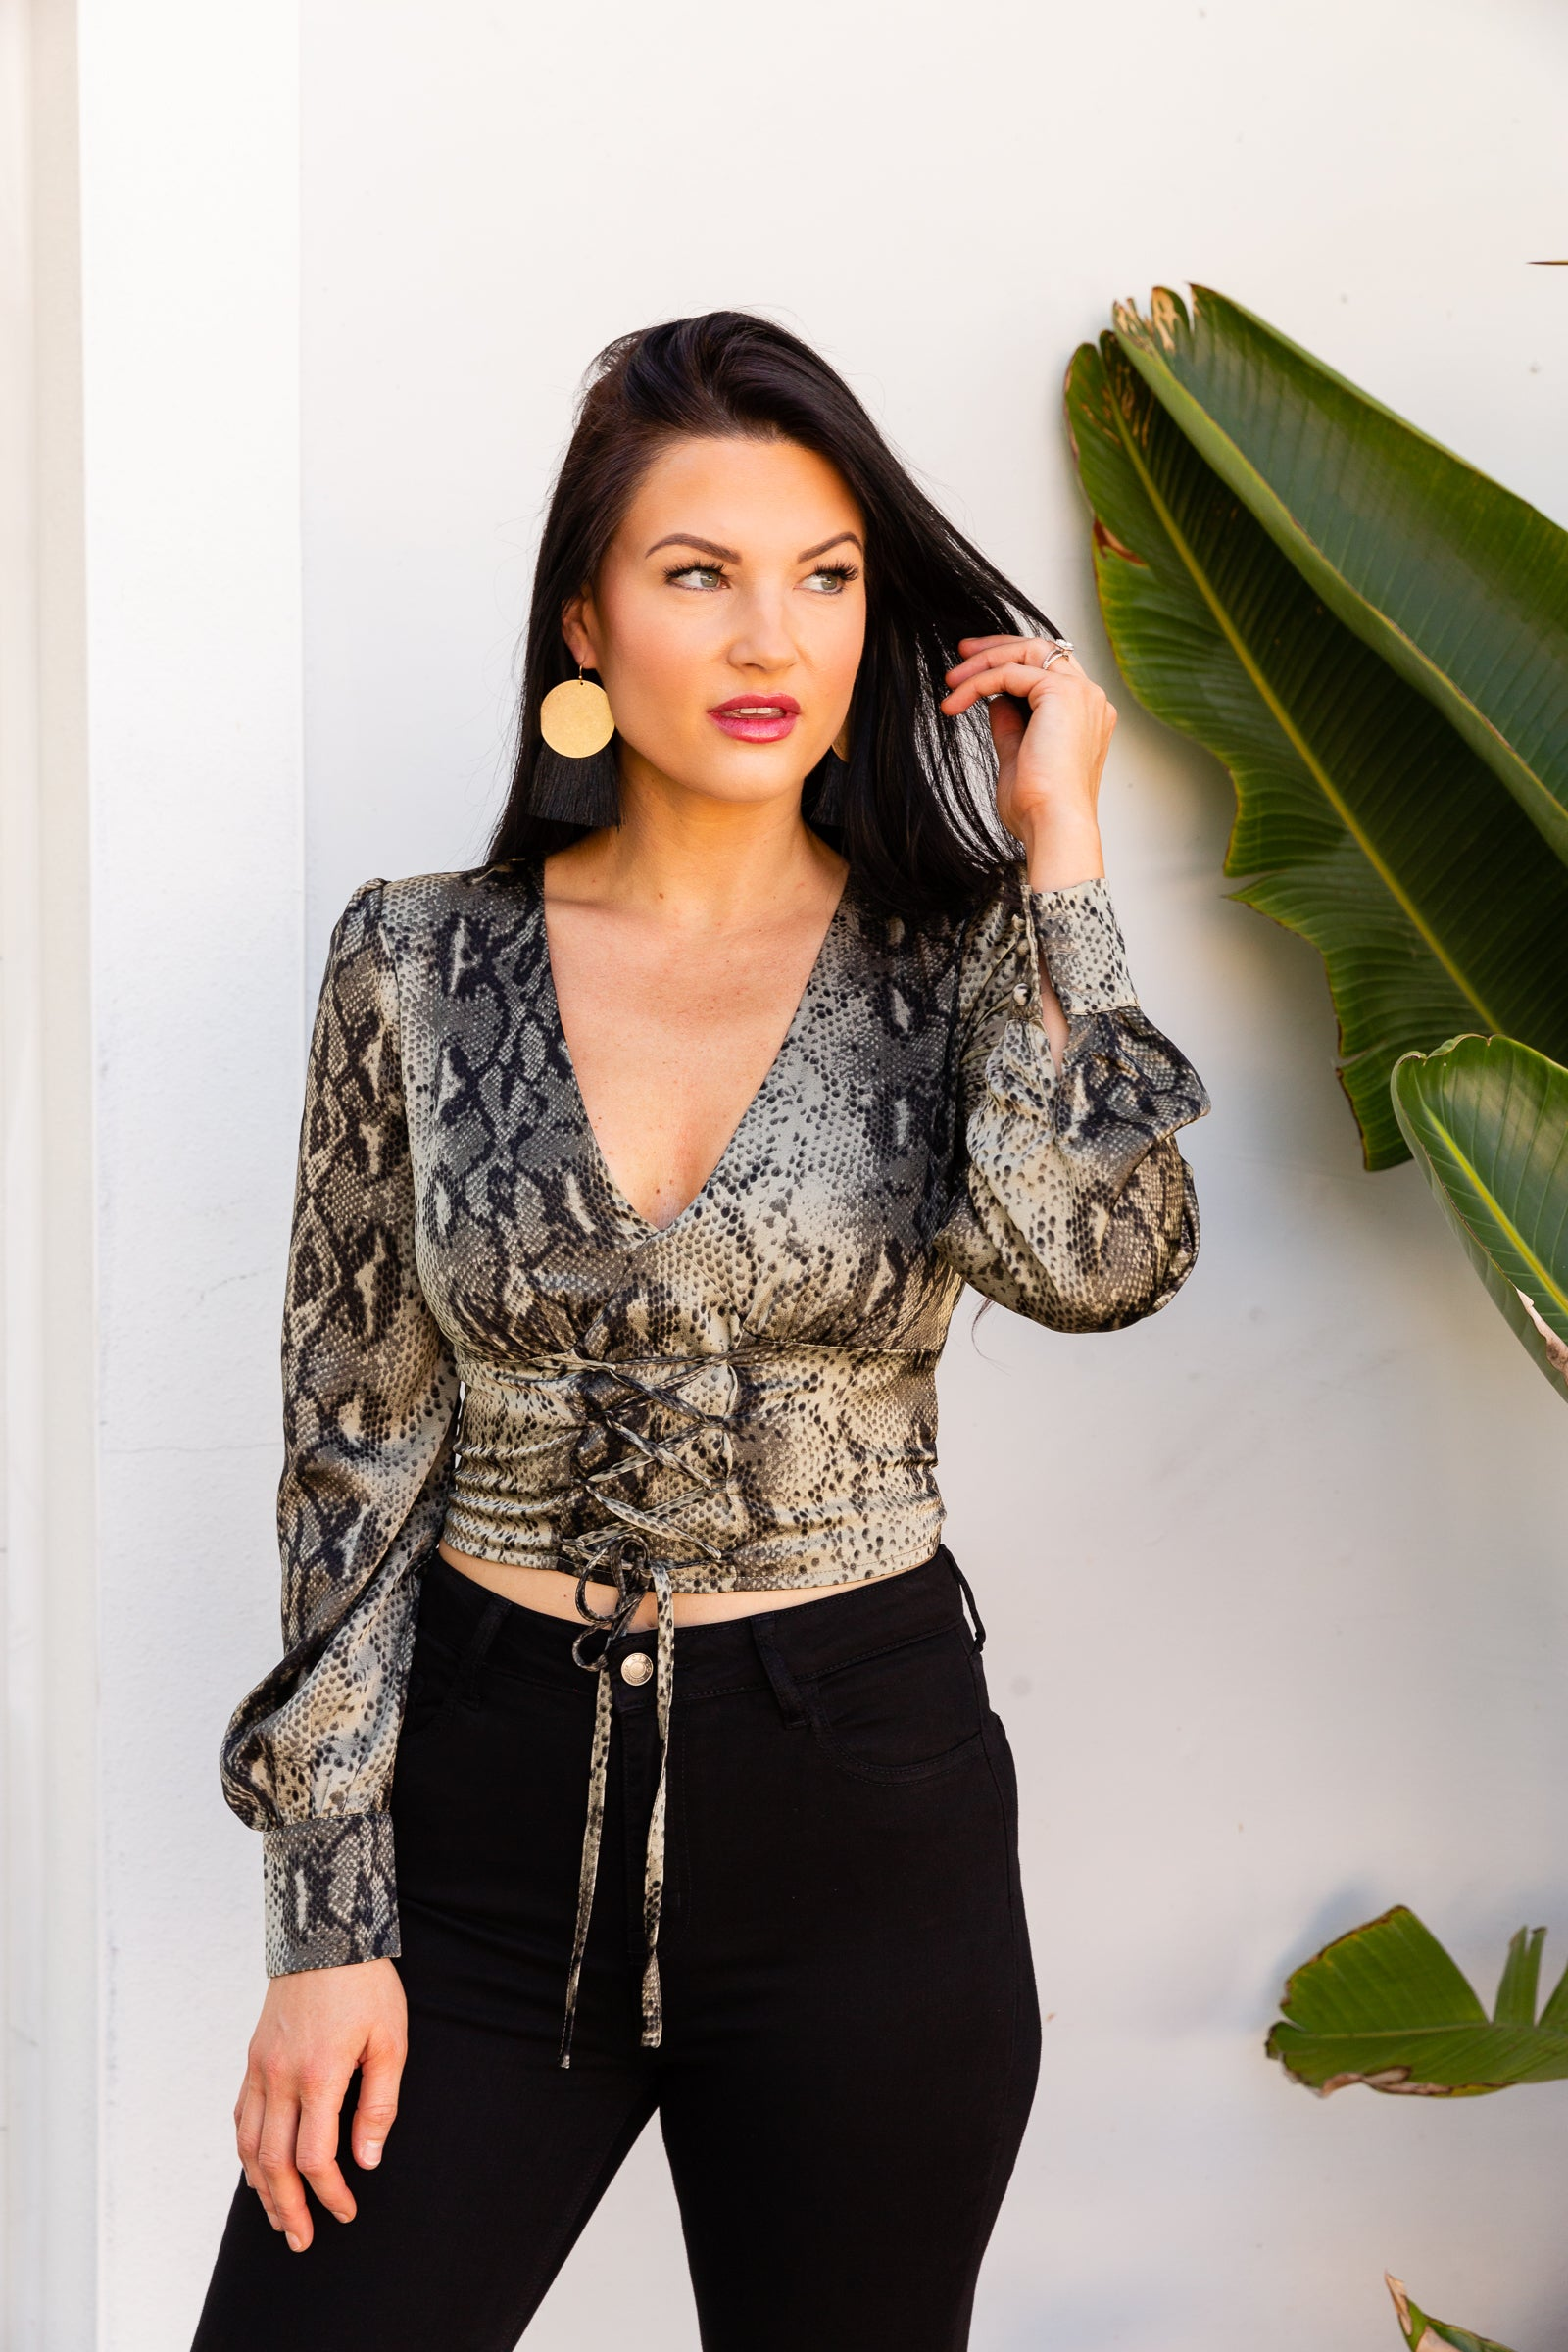 This snake printed top is on satiny fabric, long button cuffed sleeves that attach to a deep v-neckline on a fitted and cropped bodice with crisscrossed tied string detail down the center.